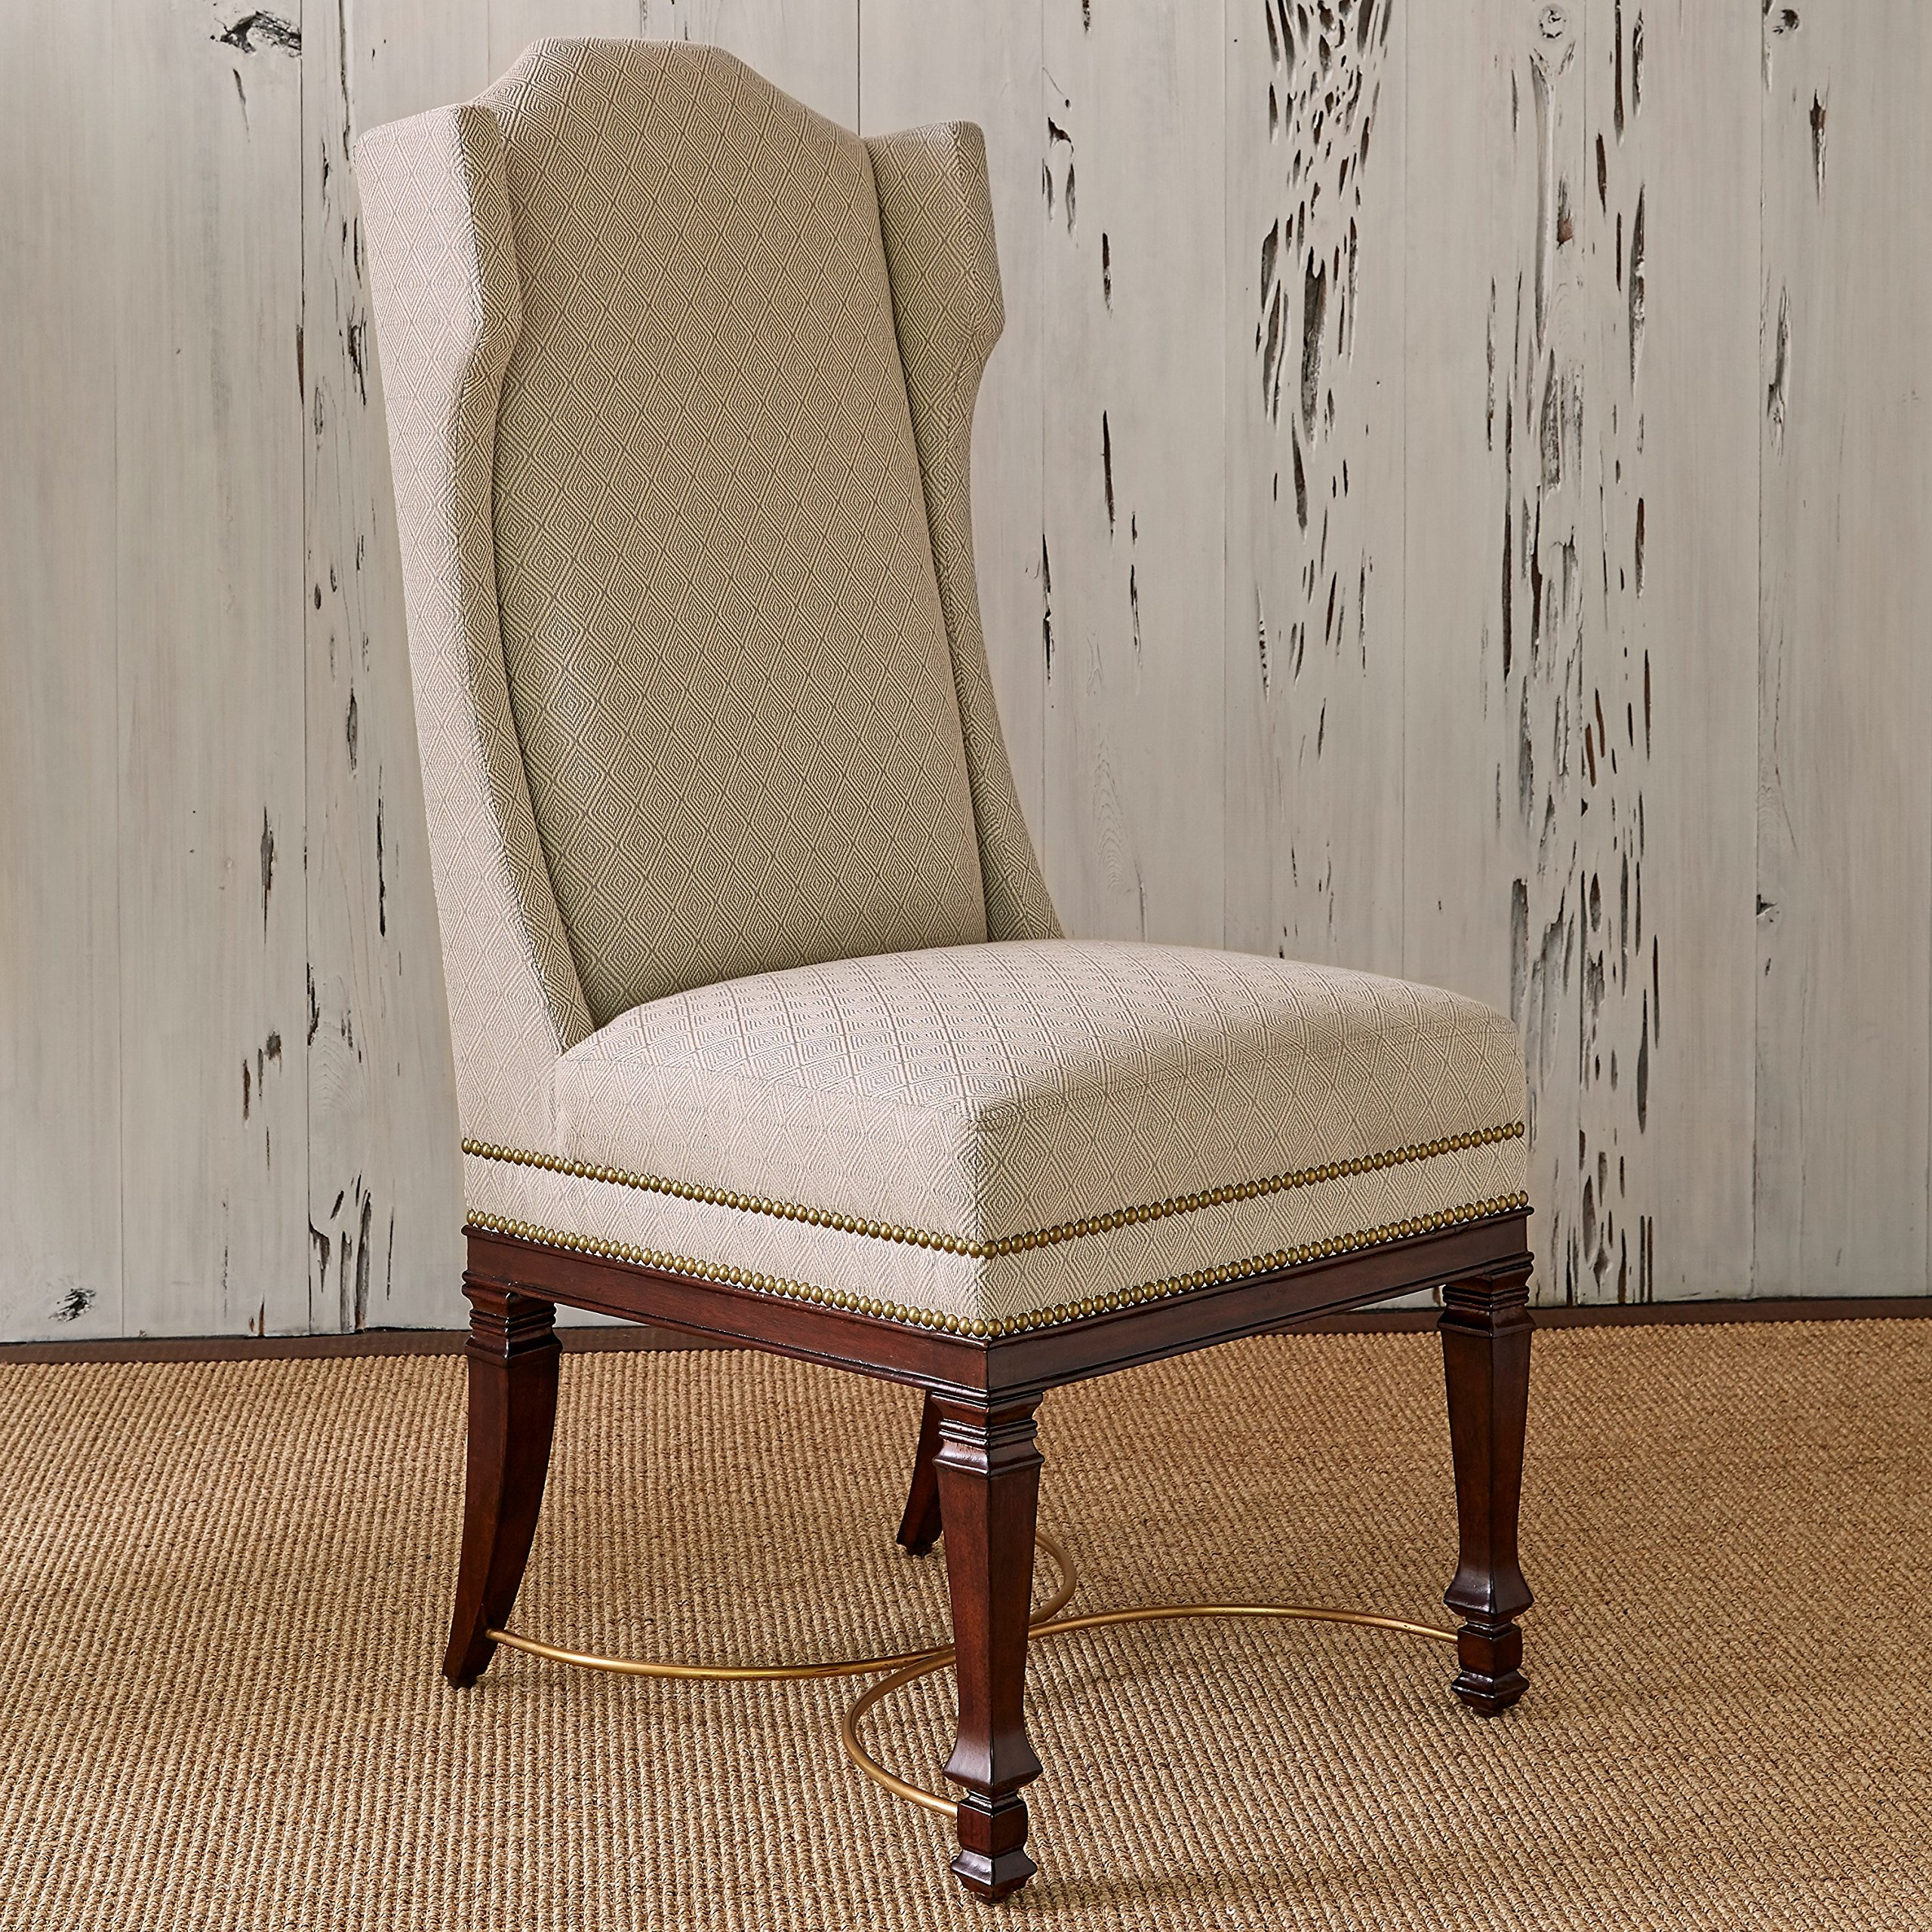 Ambella Home Collections 58019-610-001 Atta Boy Flax Wing Dining Chair